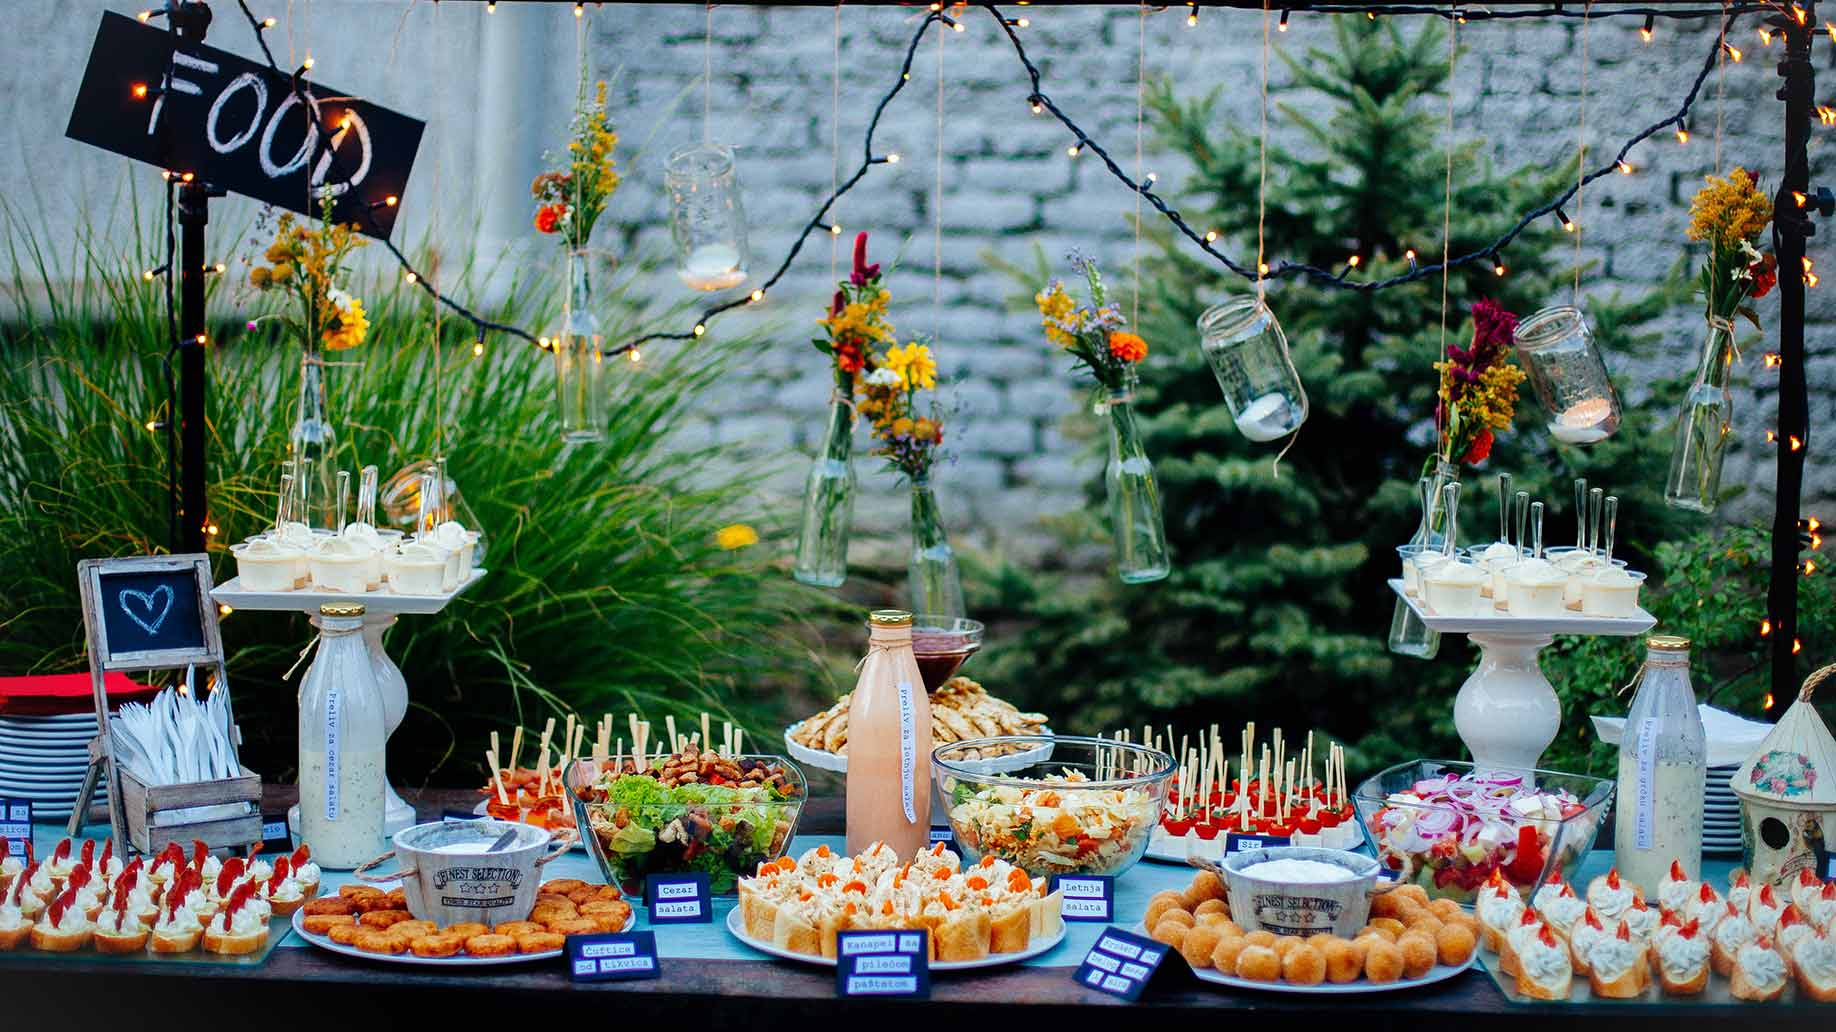 Having A Party At Home? Hire The Private Catering Services To Save Time And Effort